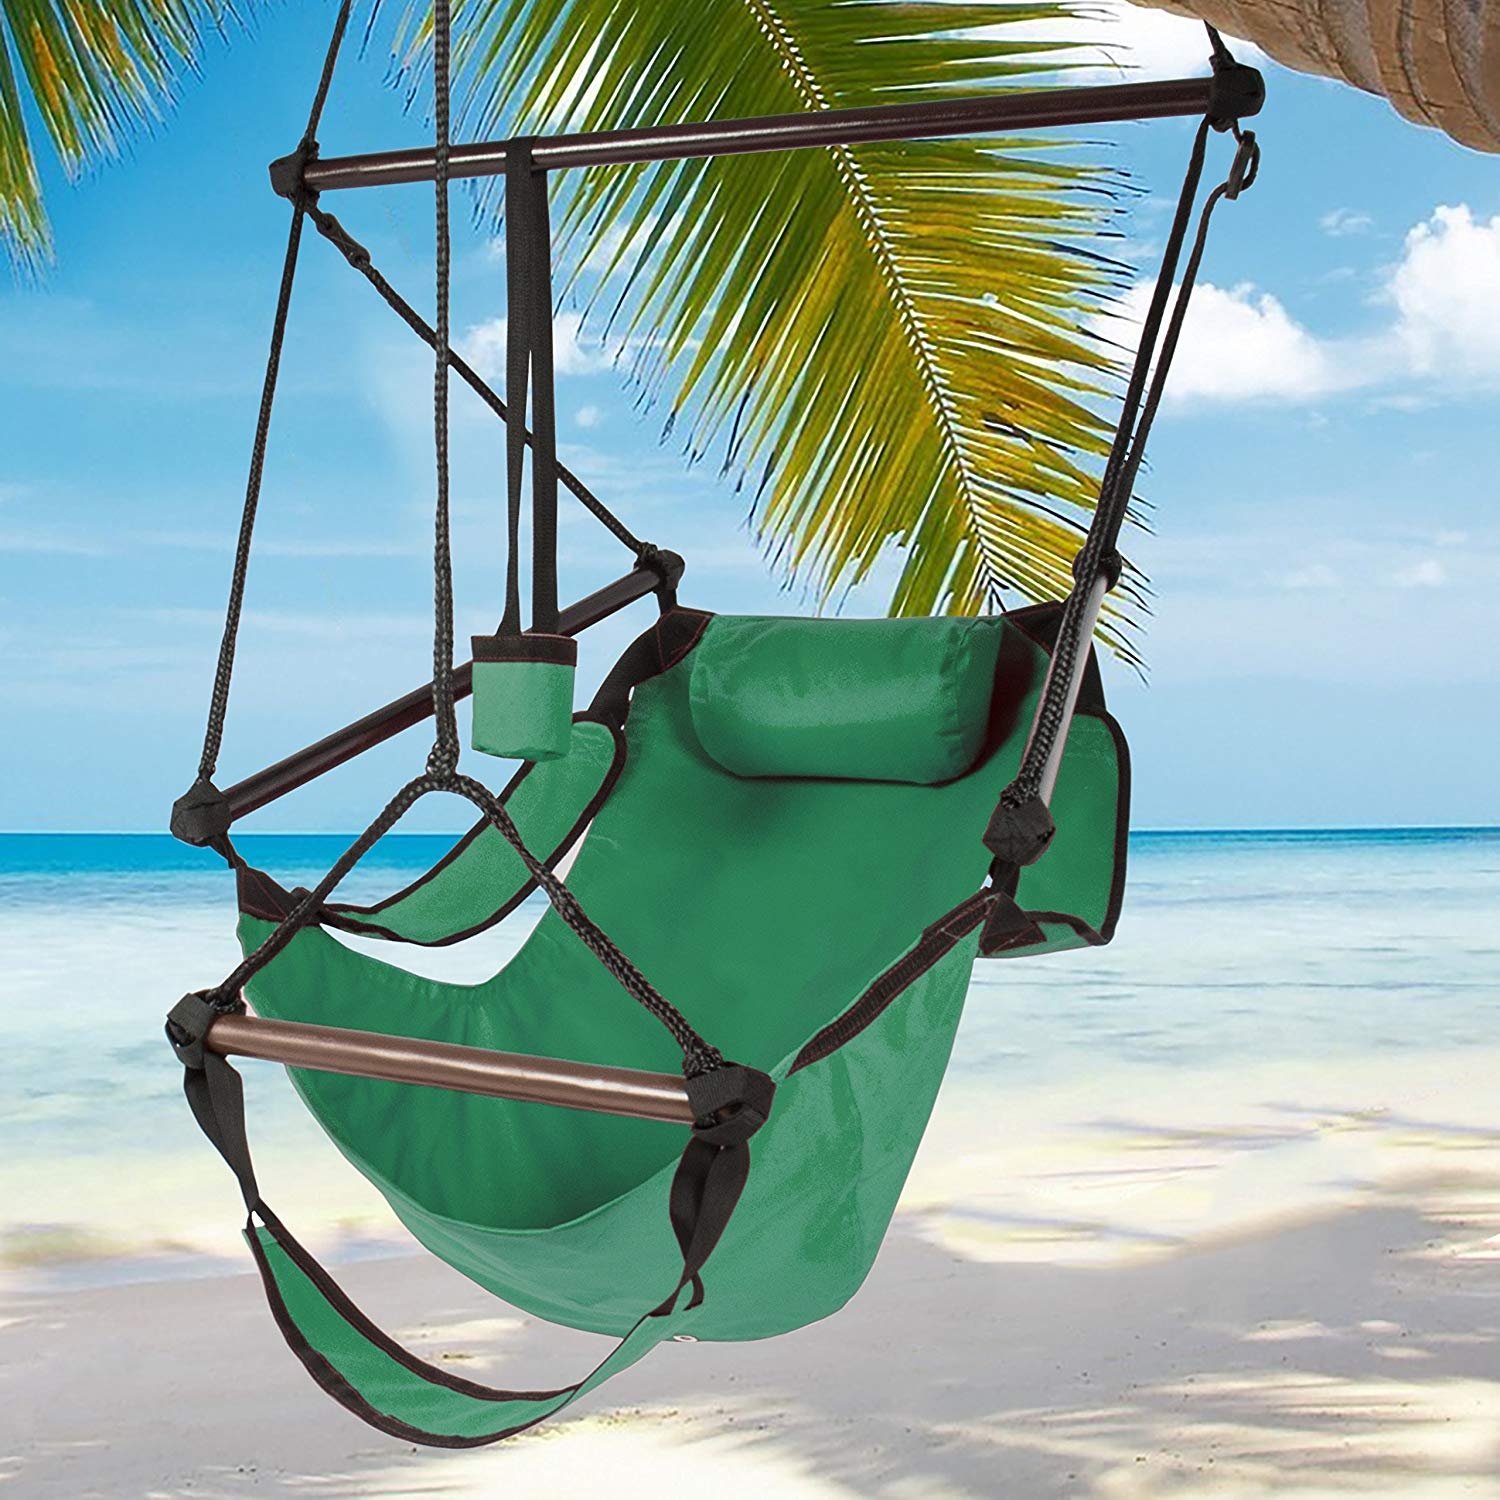 Top 10 Best Hammock Chairs in 2020 Reviews & Buying Guide